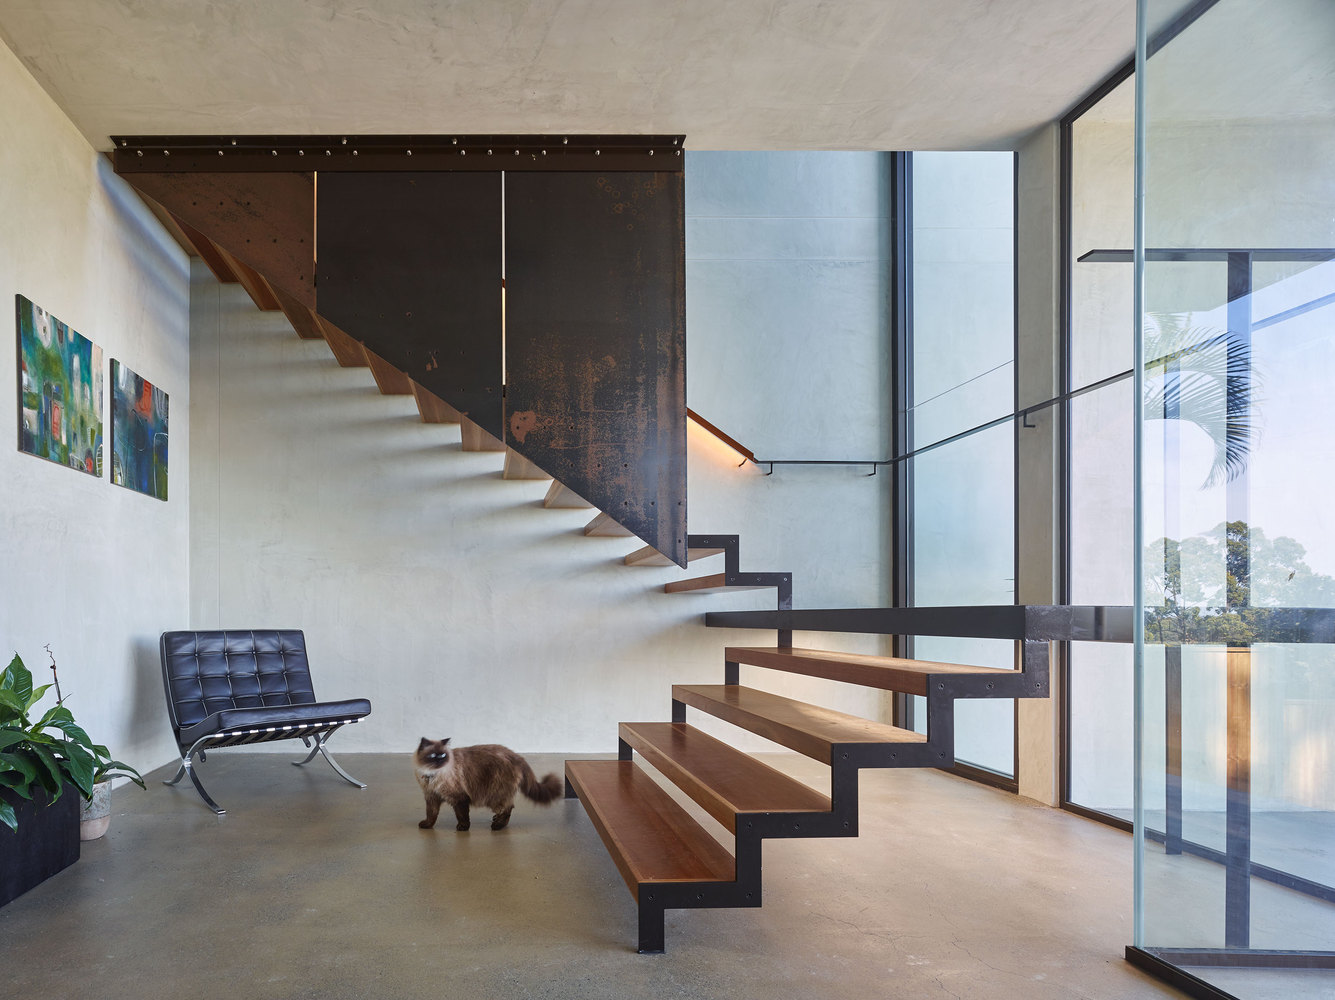 Garde Corps Metal Design gallery of bardon residence / bligh graham architects - 13